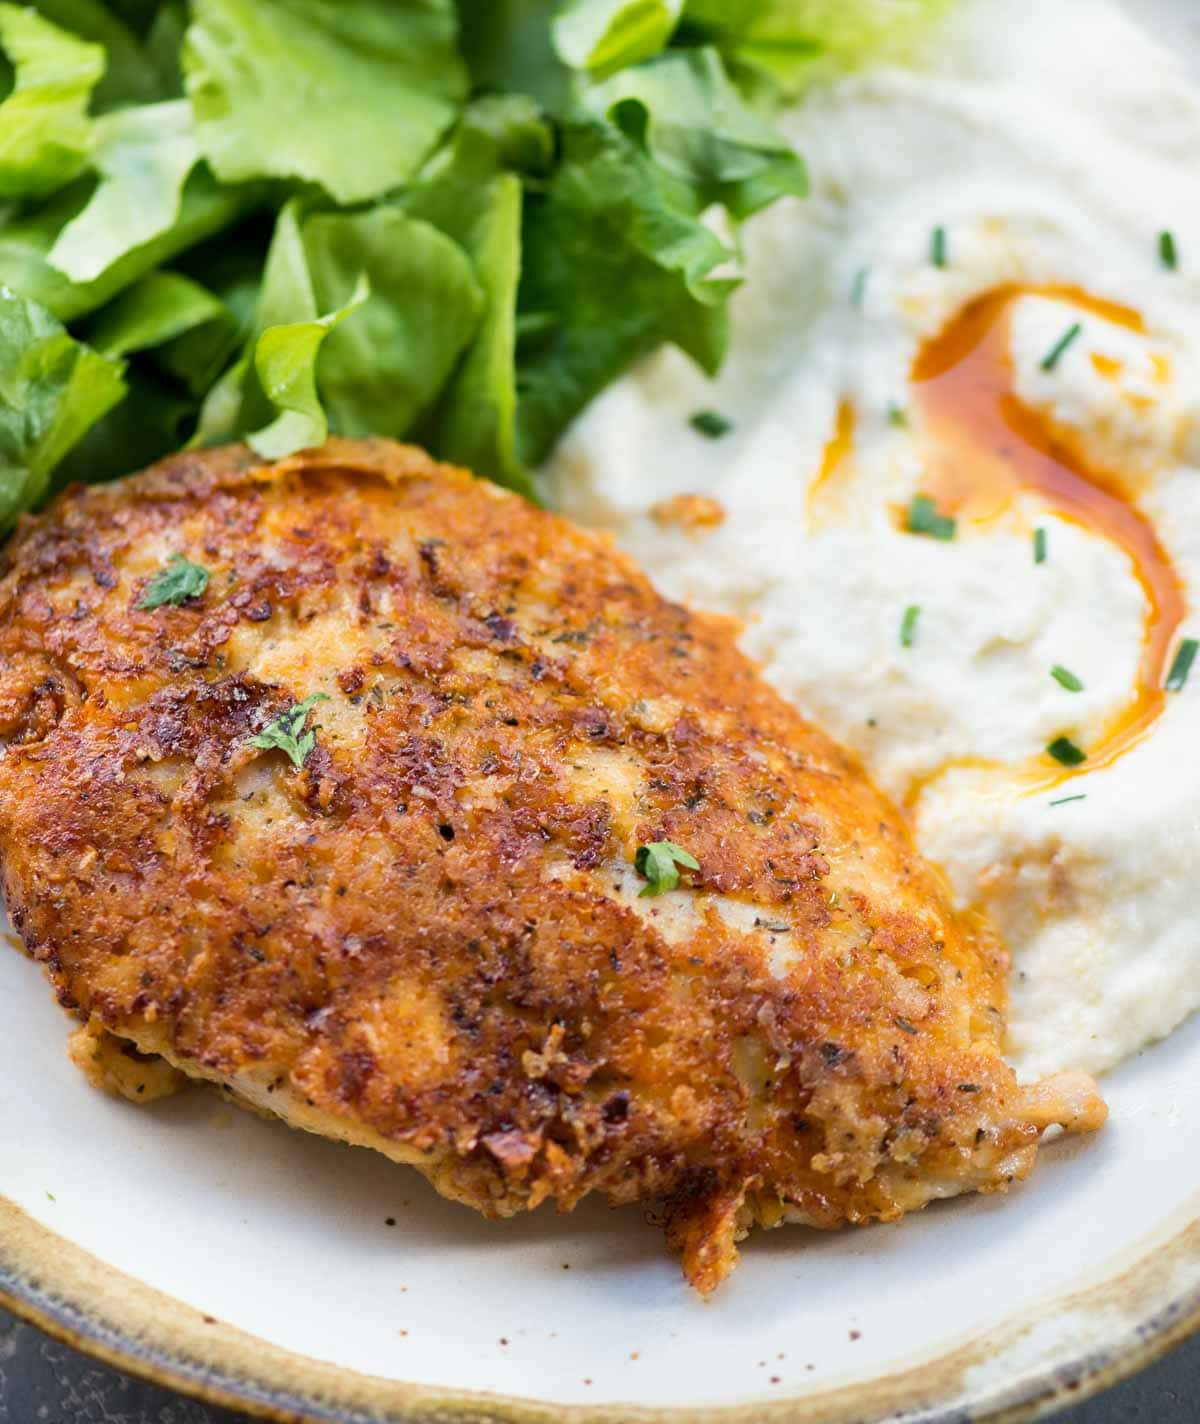 Perfectly crispy Parmesan Crusted Chicken recipe is an easy low carb chicken dinner made in just 15 minutes. Chicken coated with mayo for extra moist chicken, breaded with parmesan, and pan-fried.